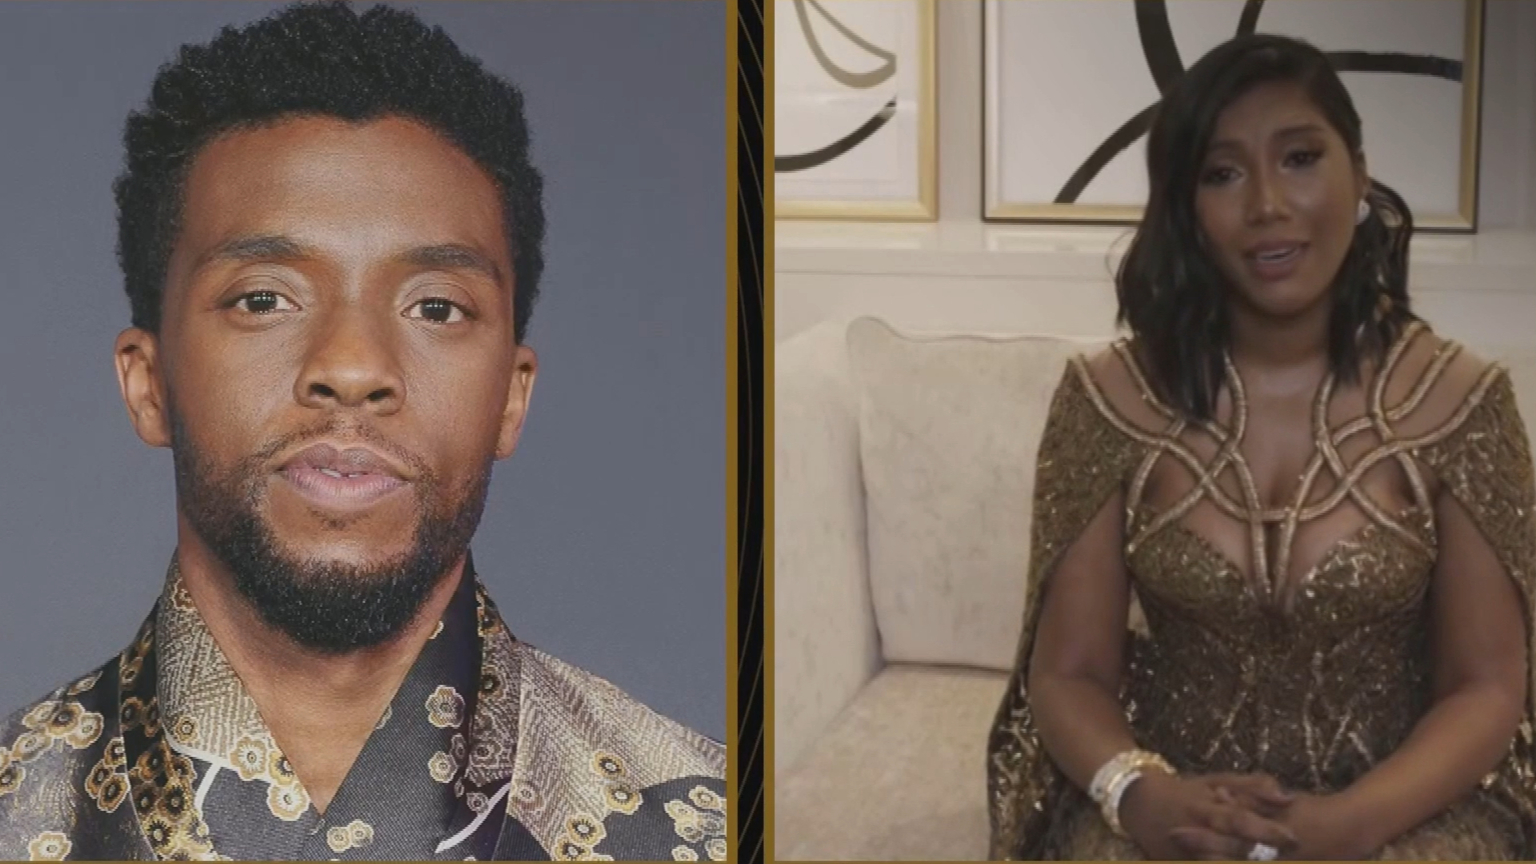 Golden Globes 2021: Chadwick Boseman's wife accepts award on his behalf